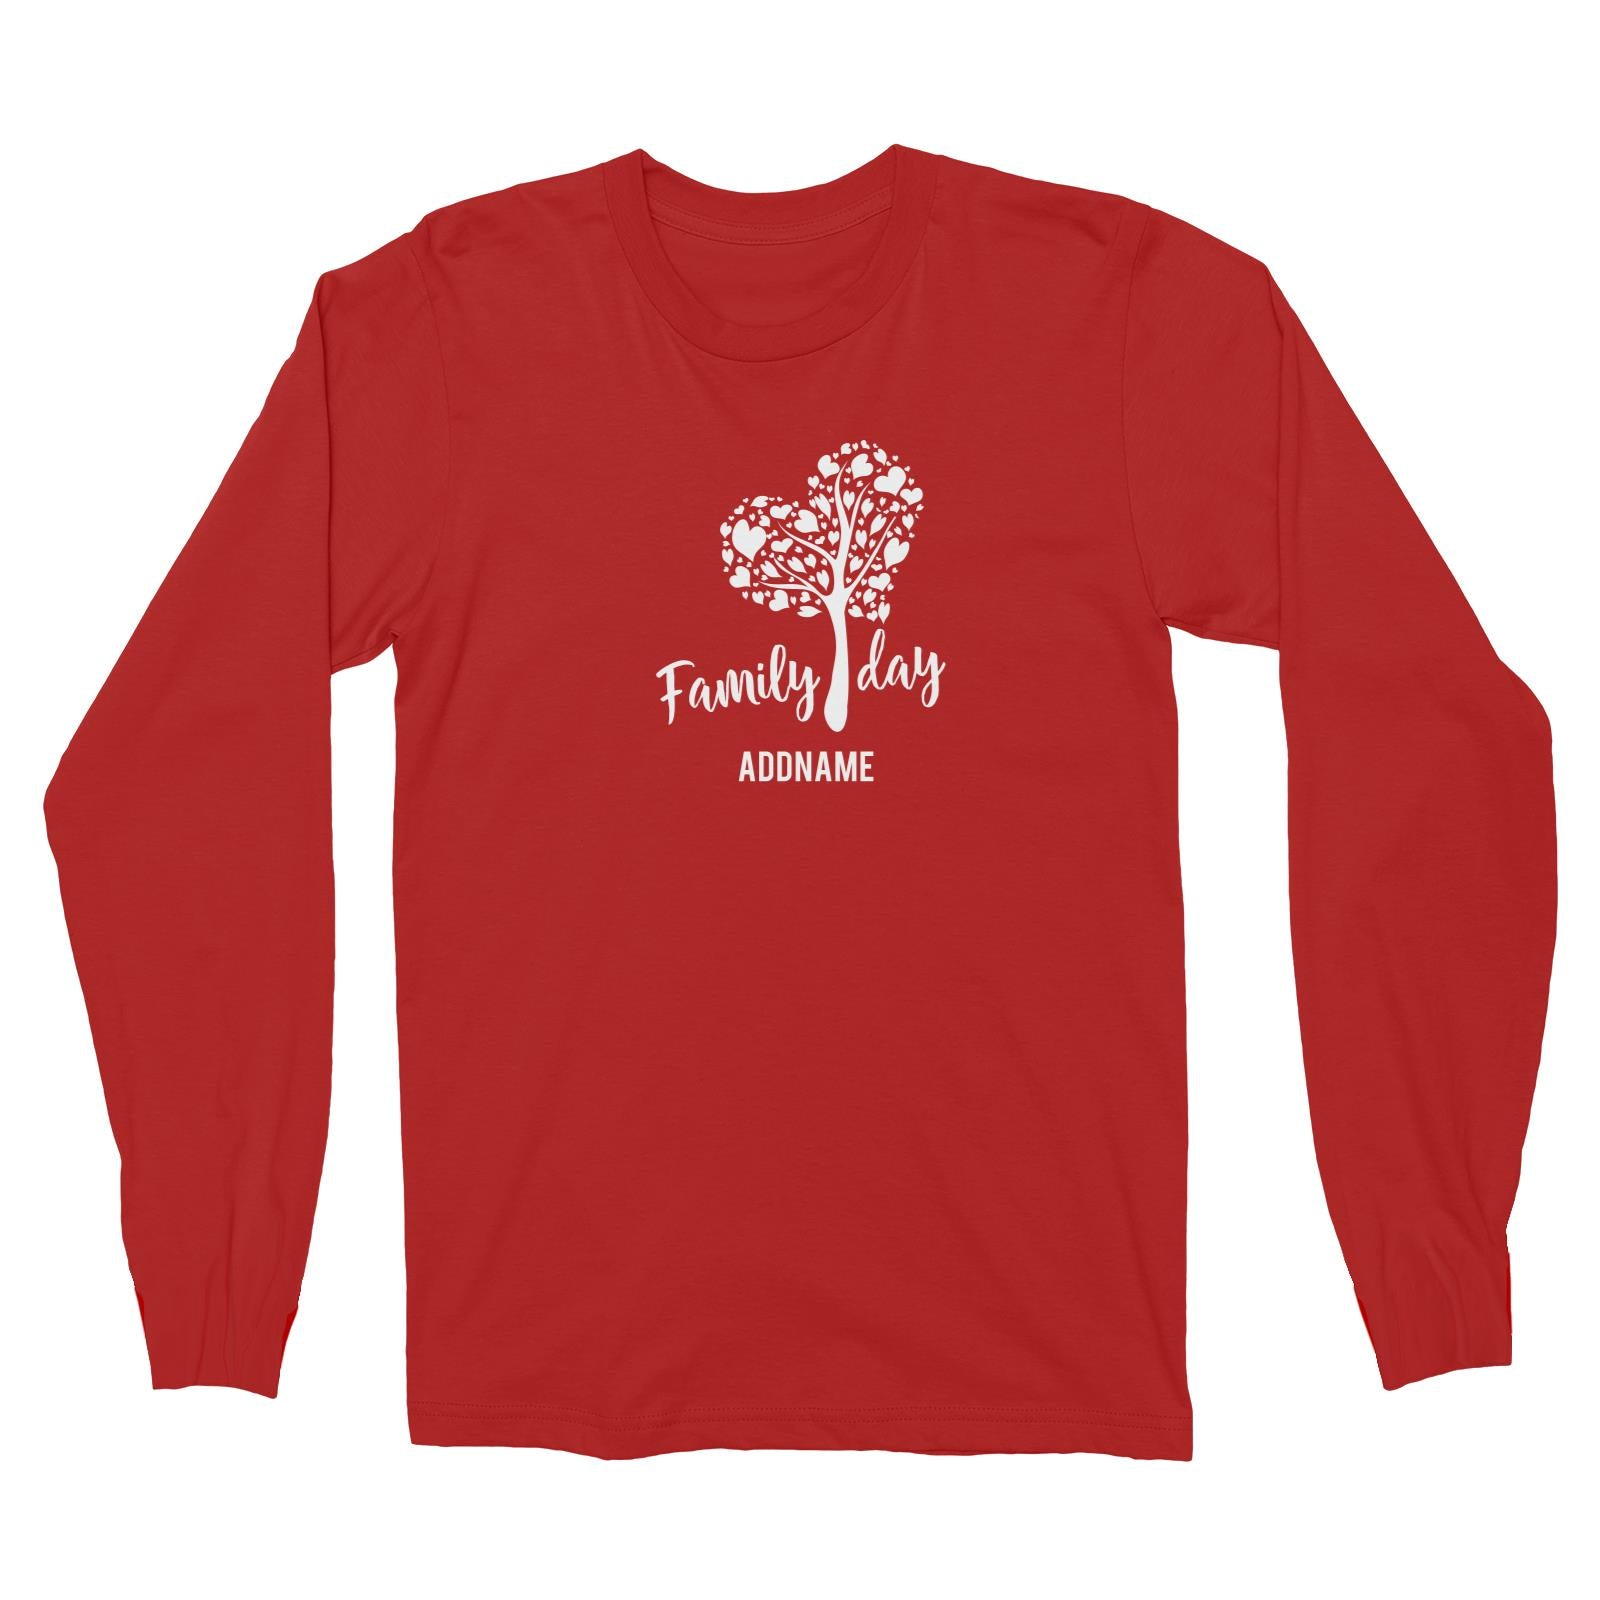 Family Day Love Tree With Love Leaves Family Day Addname Long Sleeve Unisex T-Shirt